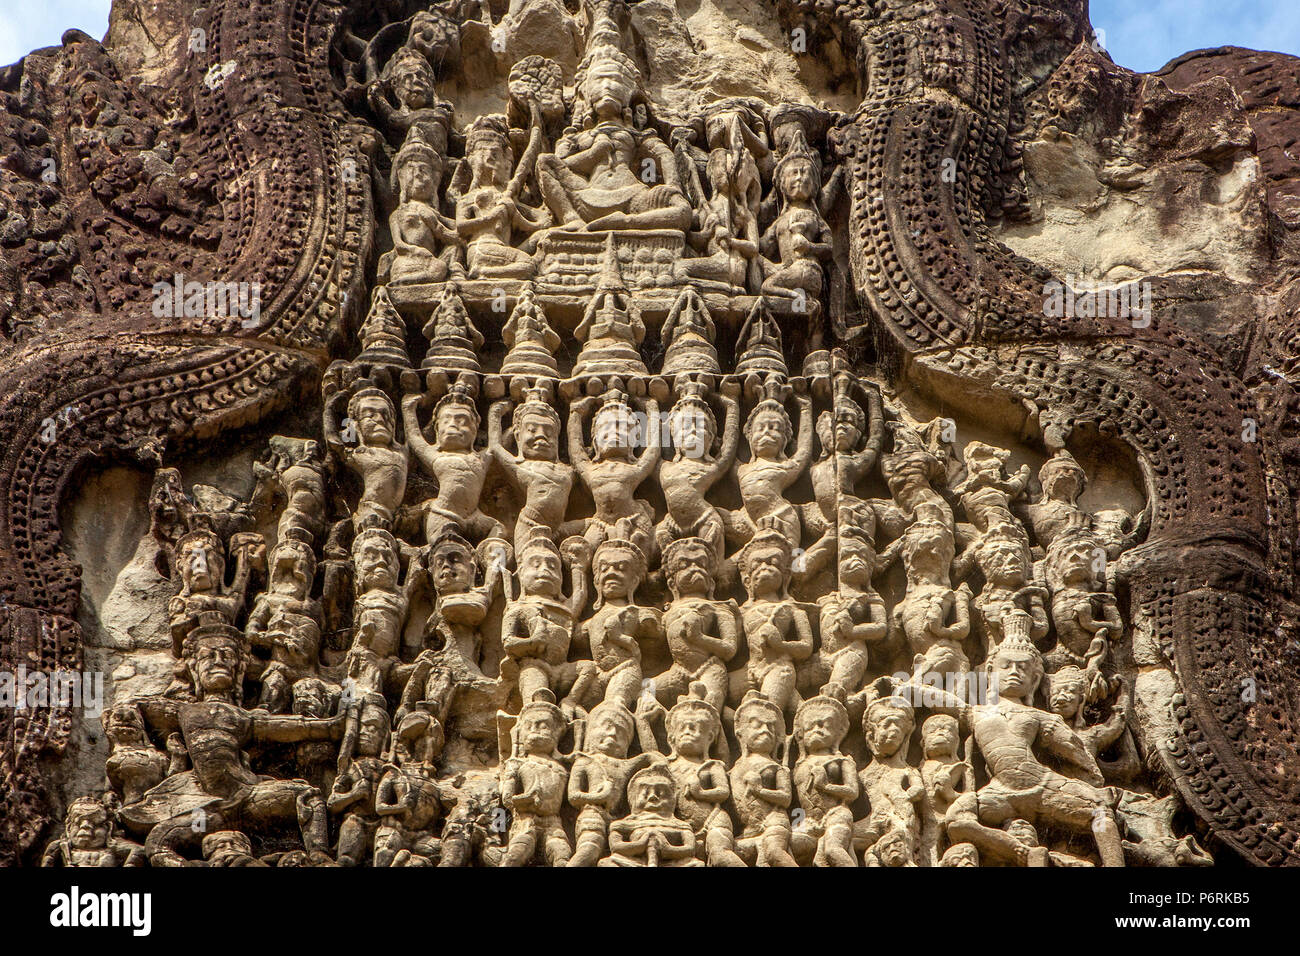 Ornately carved sandstone pediment at Angkor Wat temple at Siem Reap, Cambodia. Stock Photo